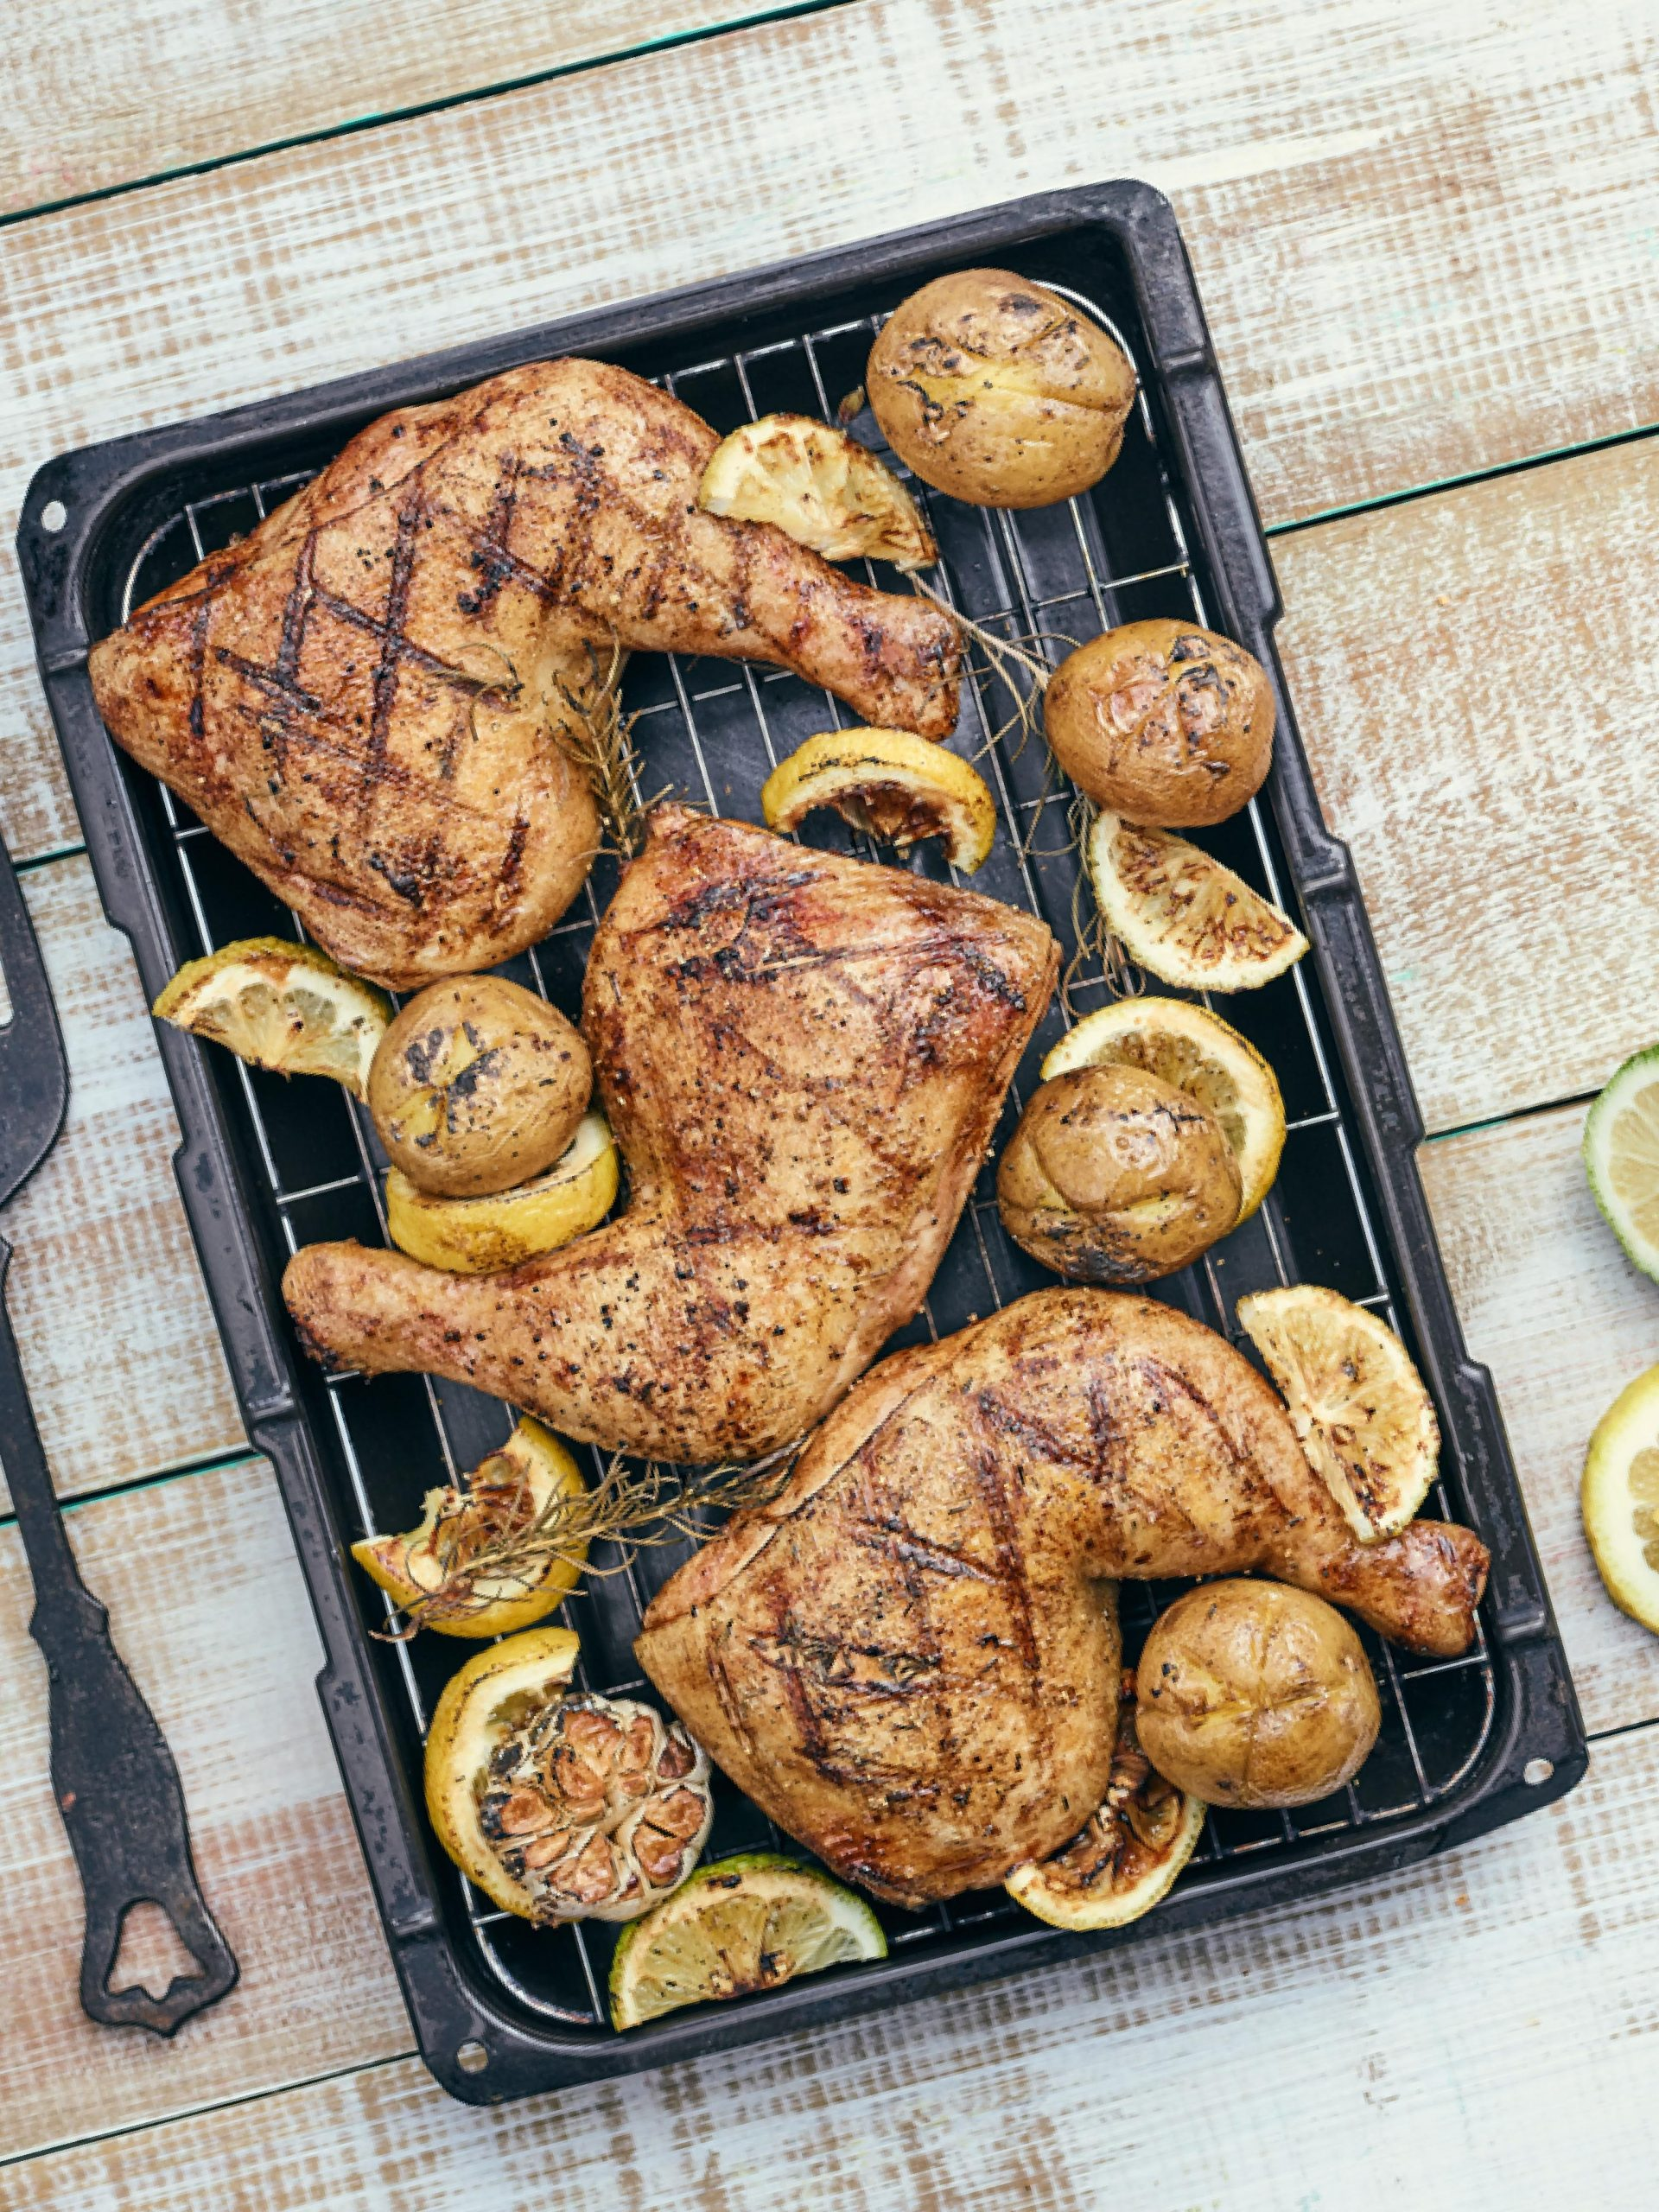 Grilled Chicken with Rosemary Roasted Garlic, Potatoes and Lemon Slices